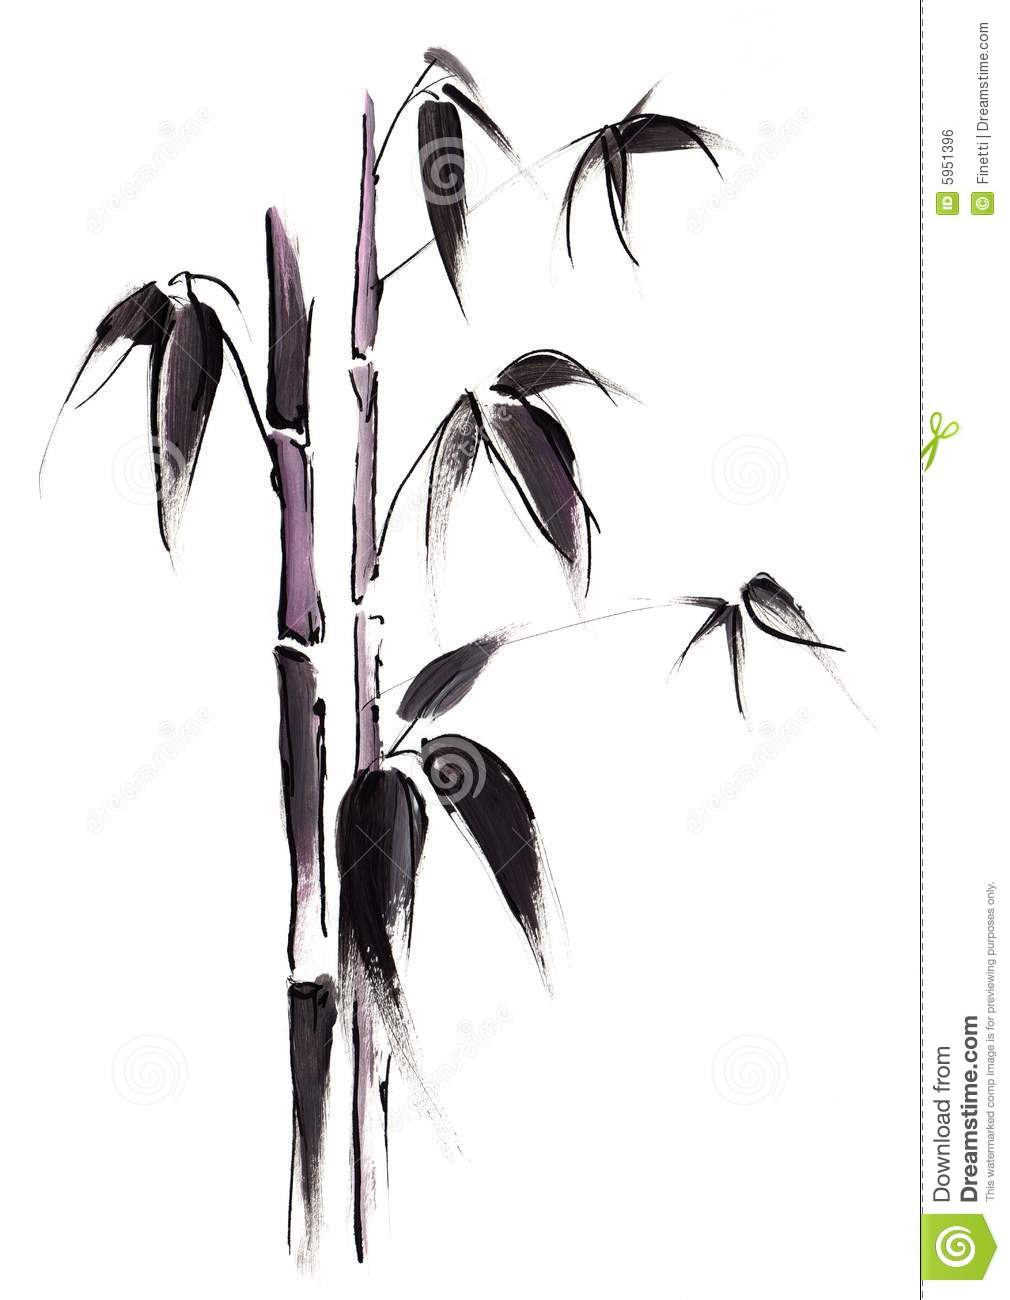 Black Bamboo Royalty Free Stock Image - Image: 5951396